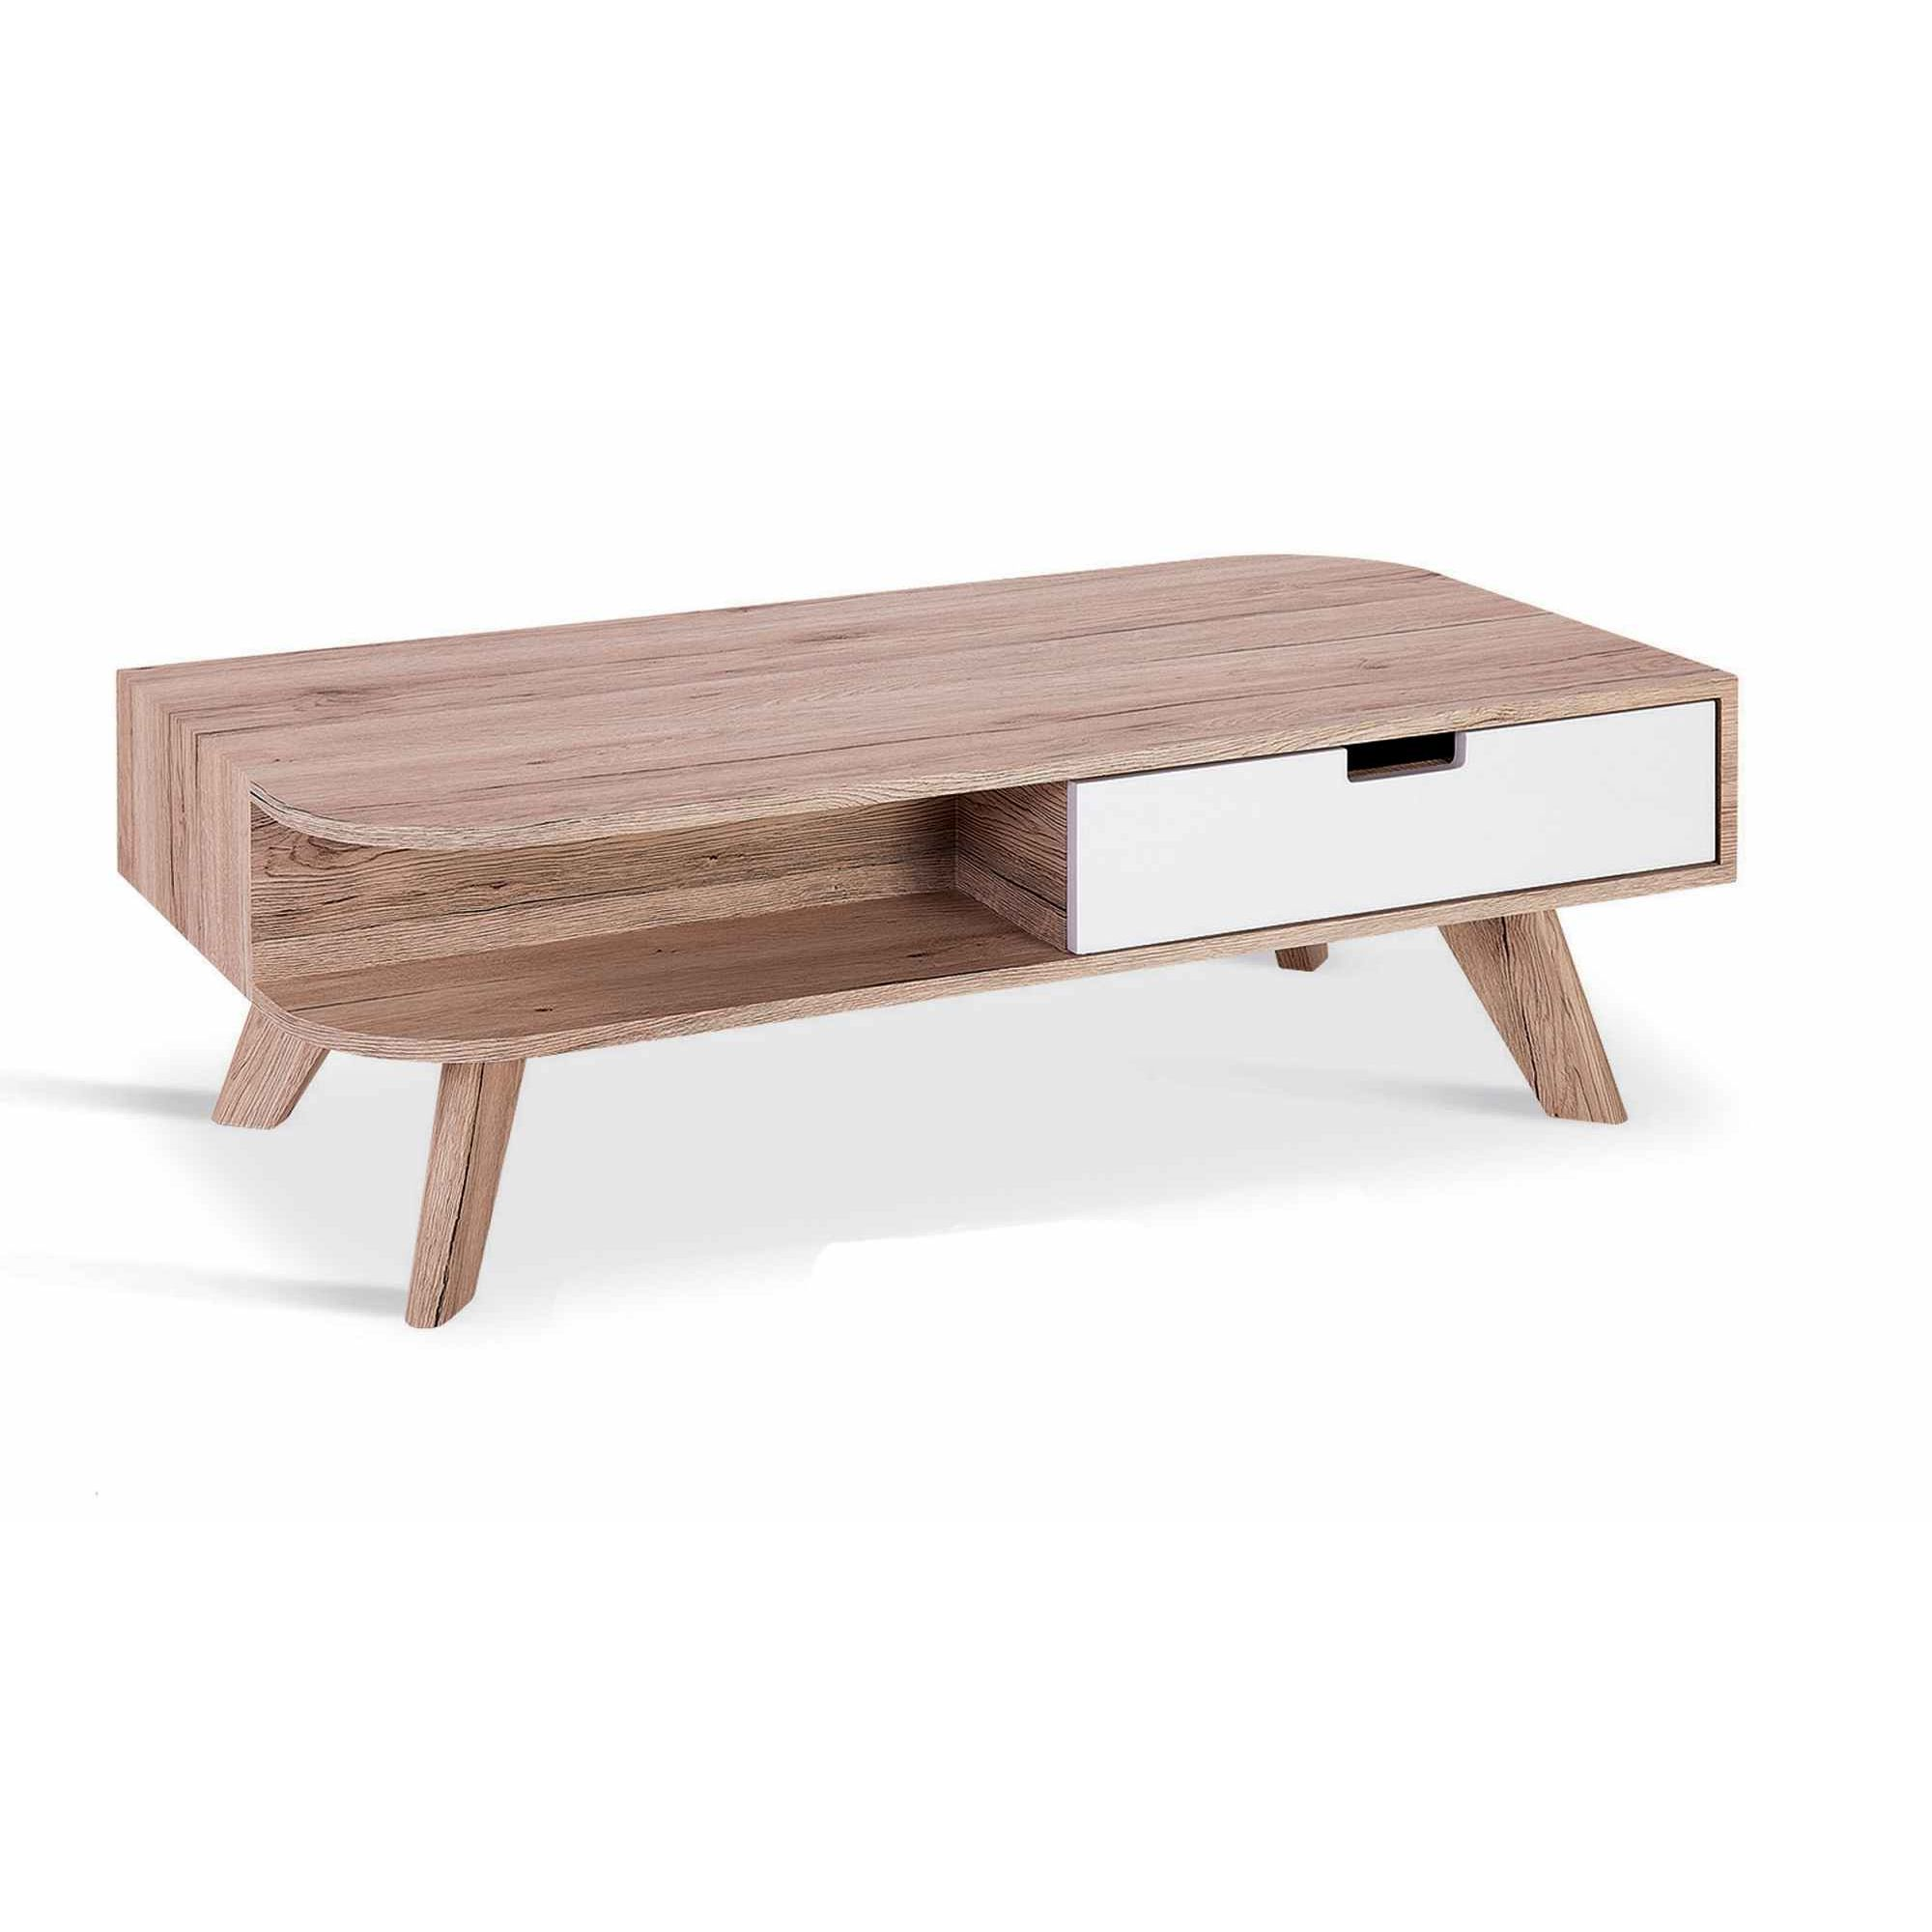 Deco in paris table basse scandinave en bois timaru avec - Table basse en bois ...